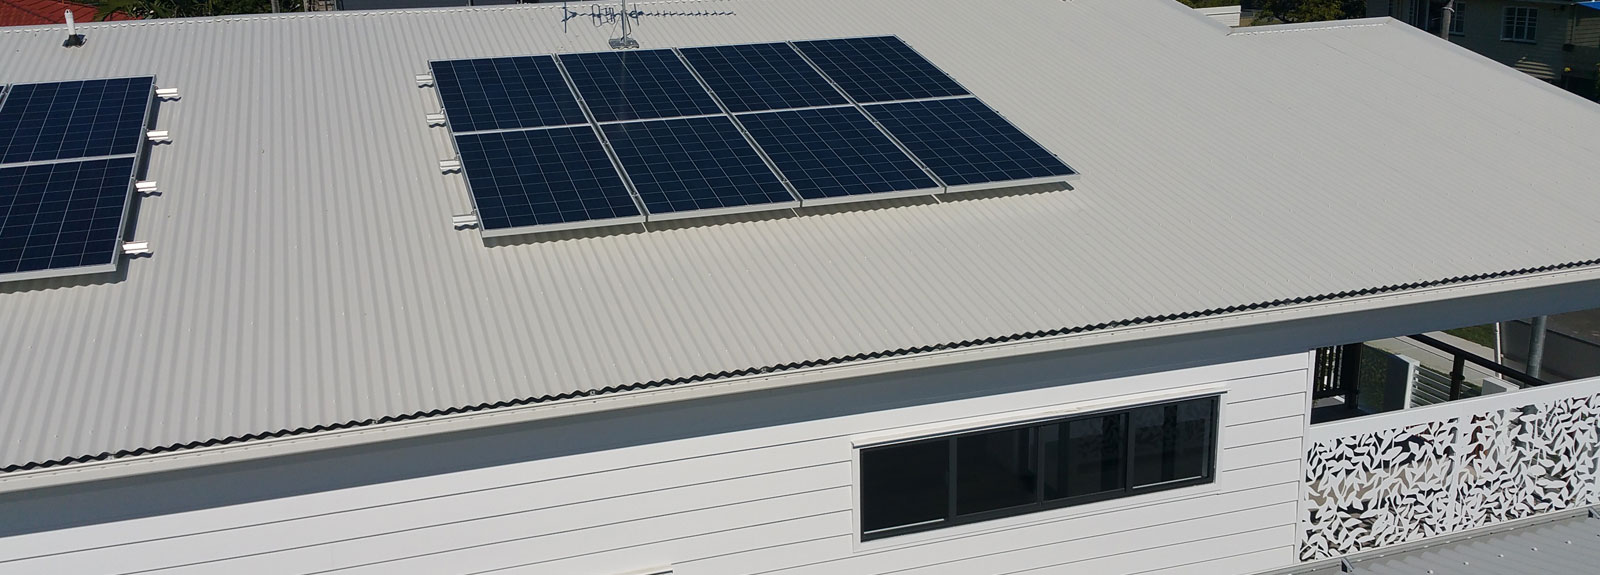 Solar Brisbane Installation Commercial Service Repair